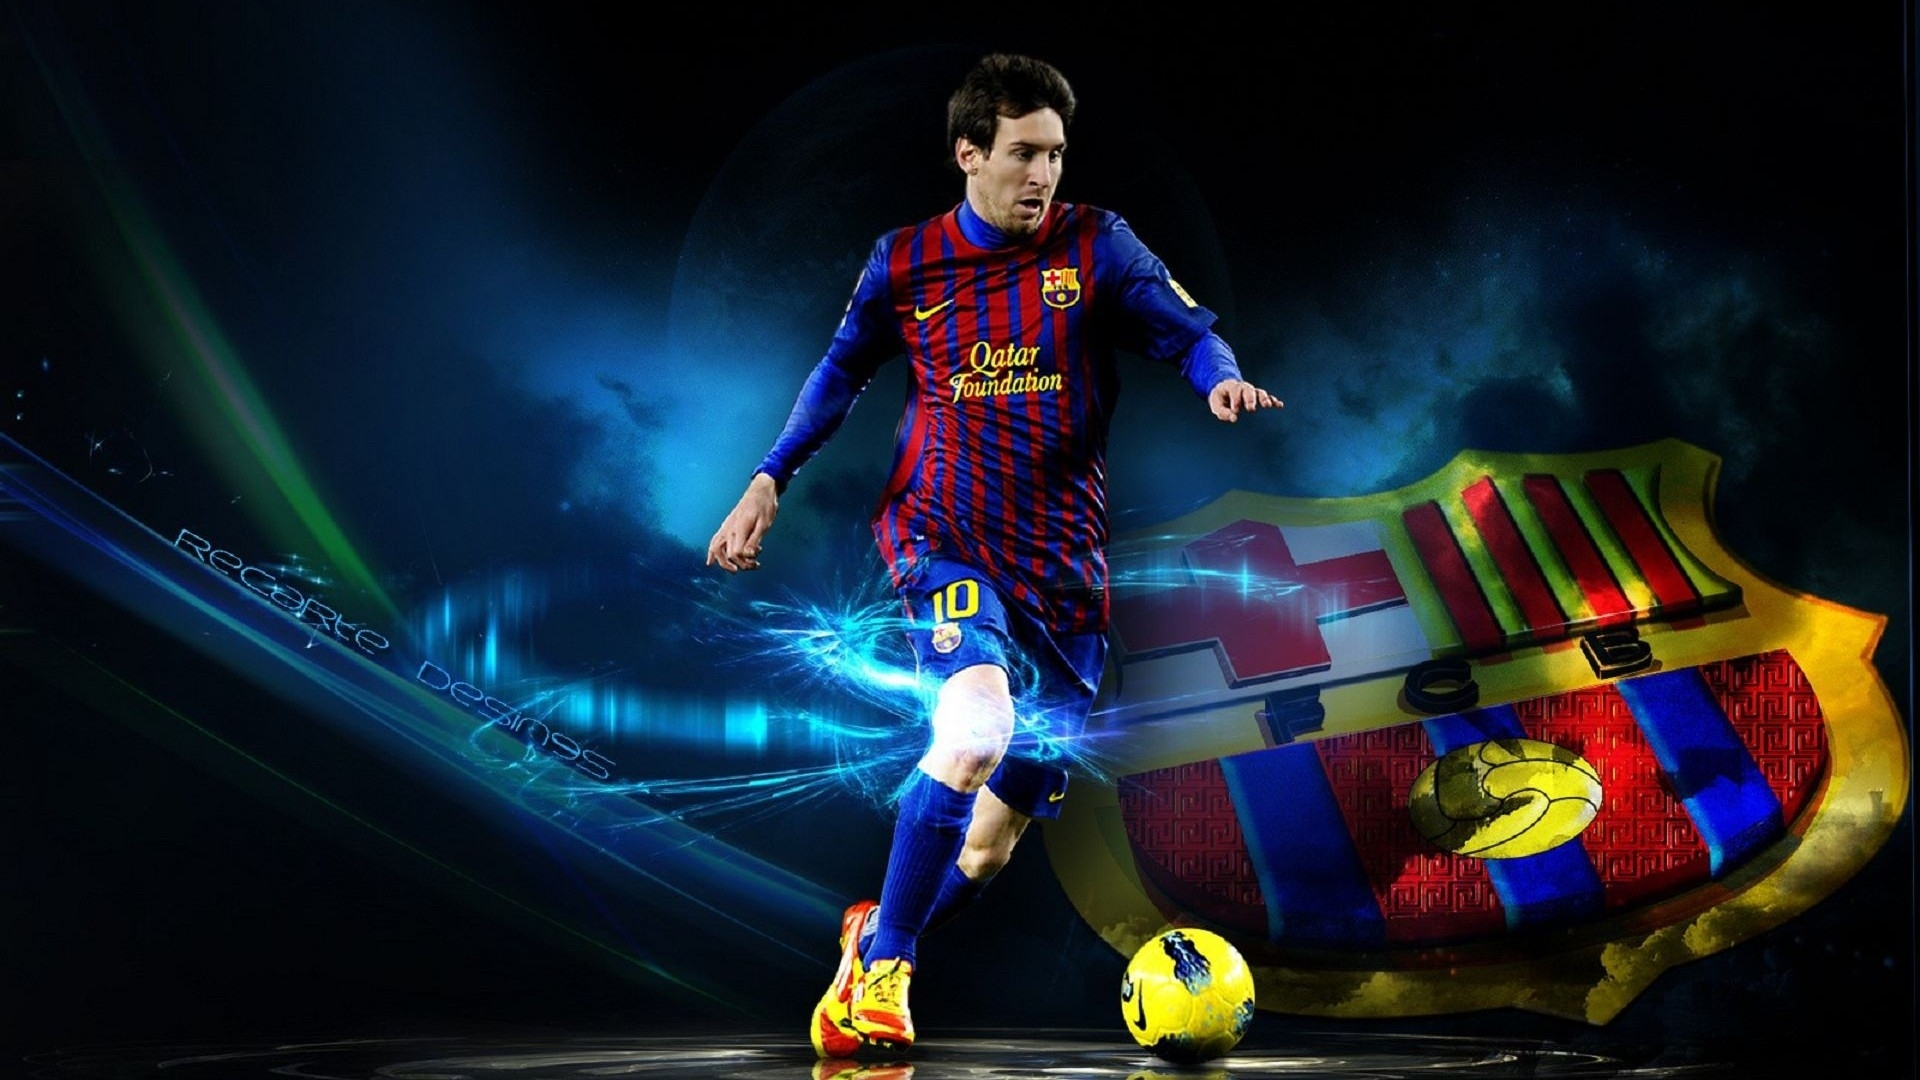 fonds d'écran lionel messi : tous les wallpapers lionel messi | fc